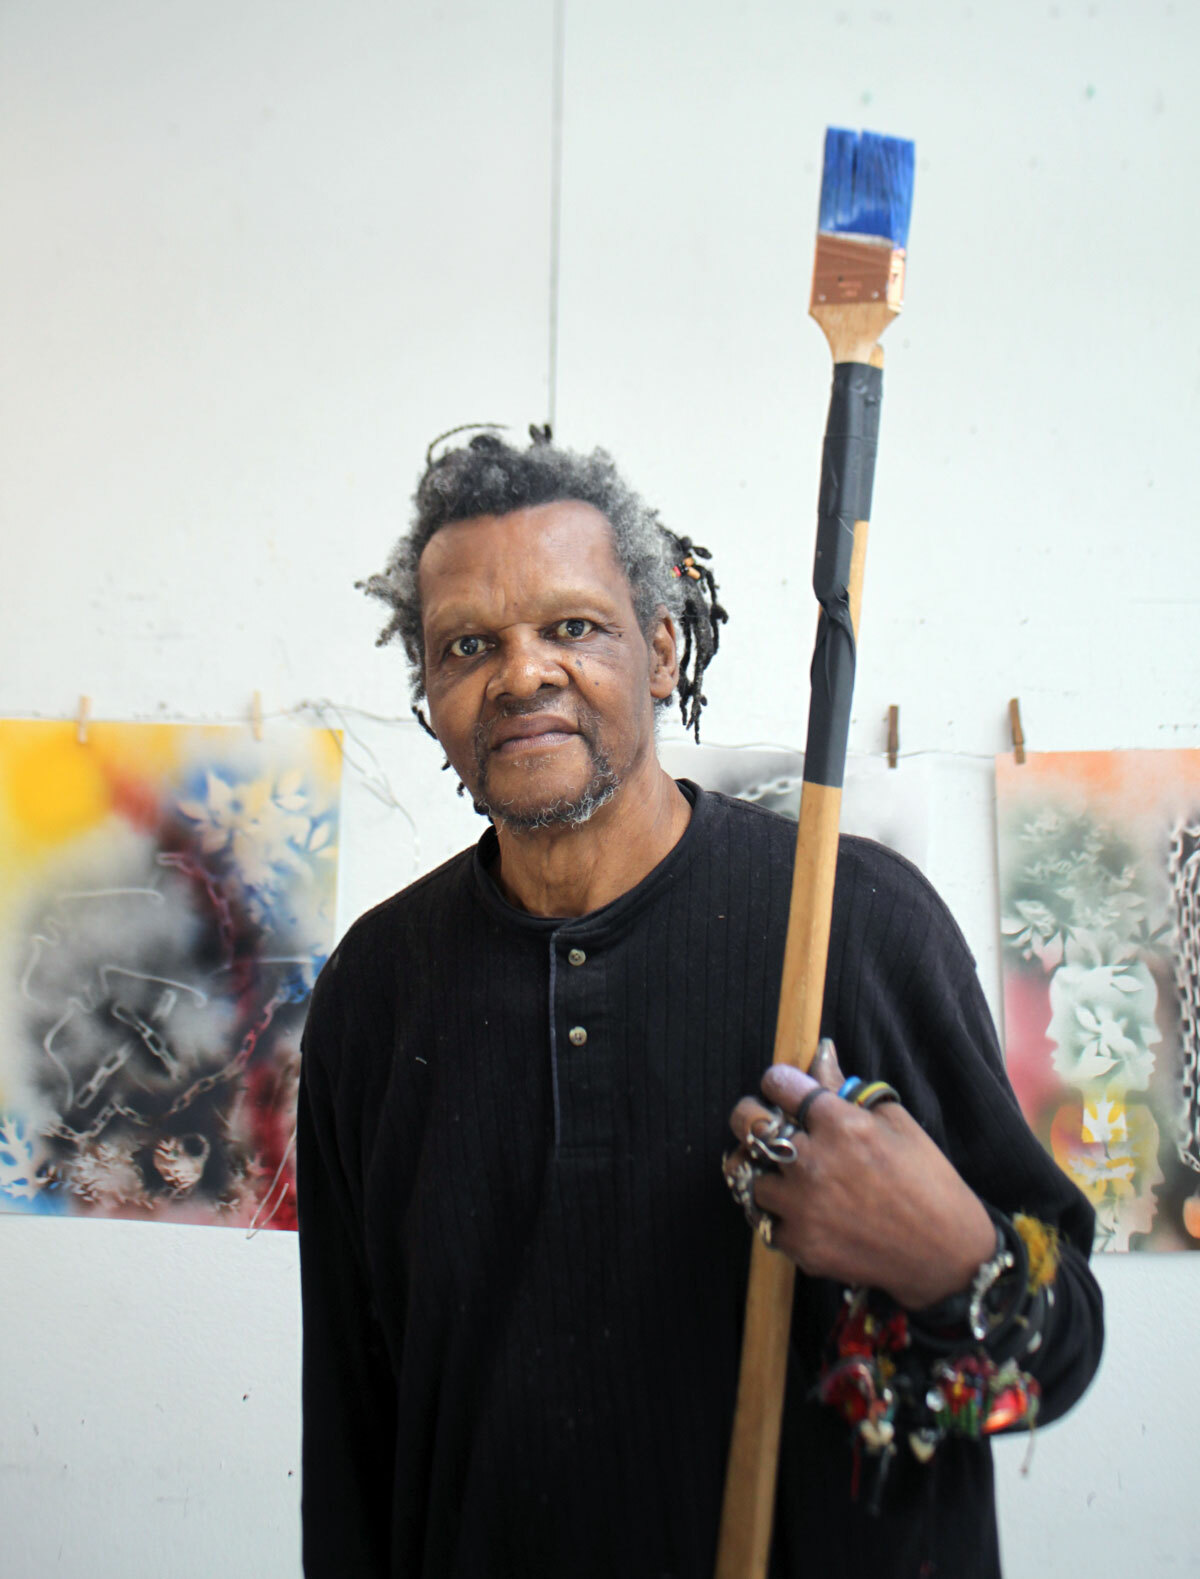 Lonnie Holley during his recent residency at the Elaine de Kooning House in East Hampton.